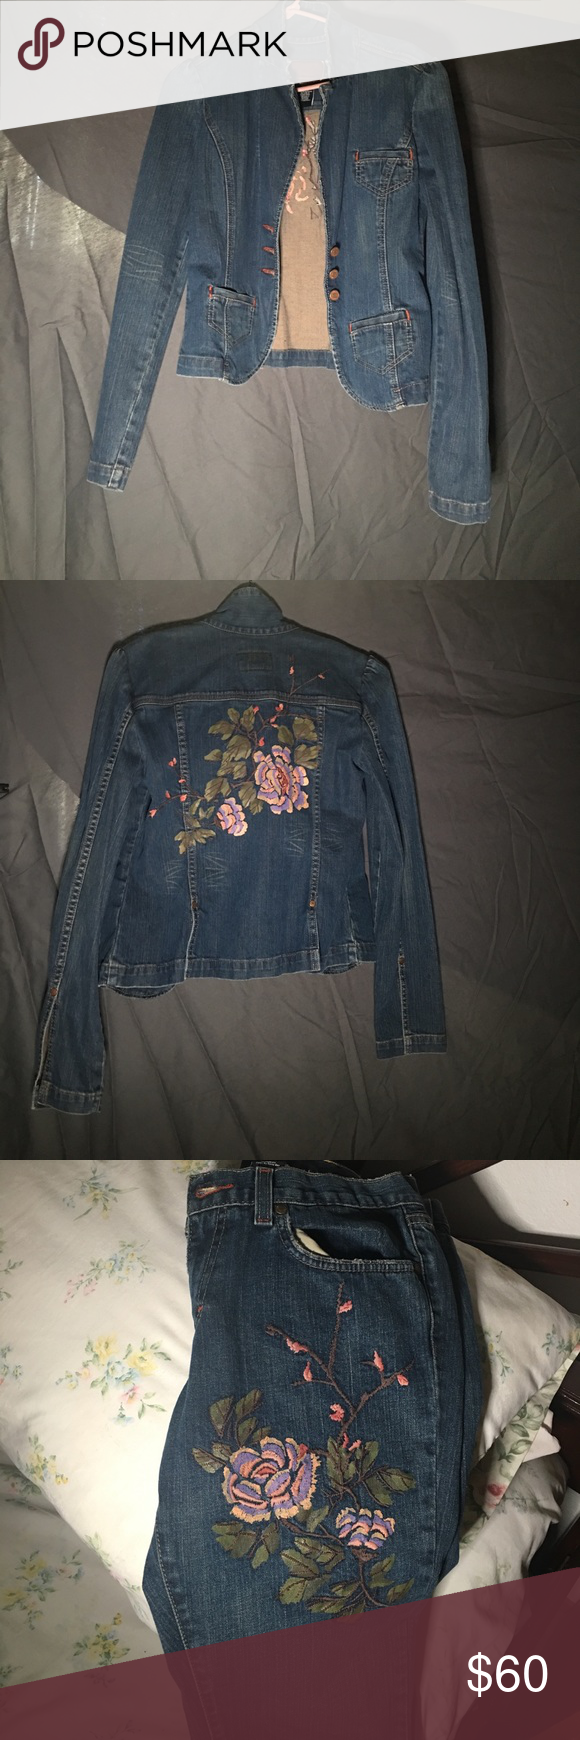 Calvin Klein Printed Jean Jacket w/ matching jeans Size 8 for pants and jacket is a size medium. Great condition and very comfy! Calvin Klein Jeans Jackets & Coats Jean Jackets